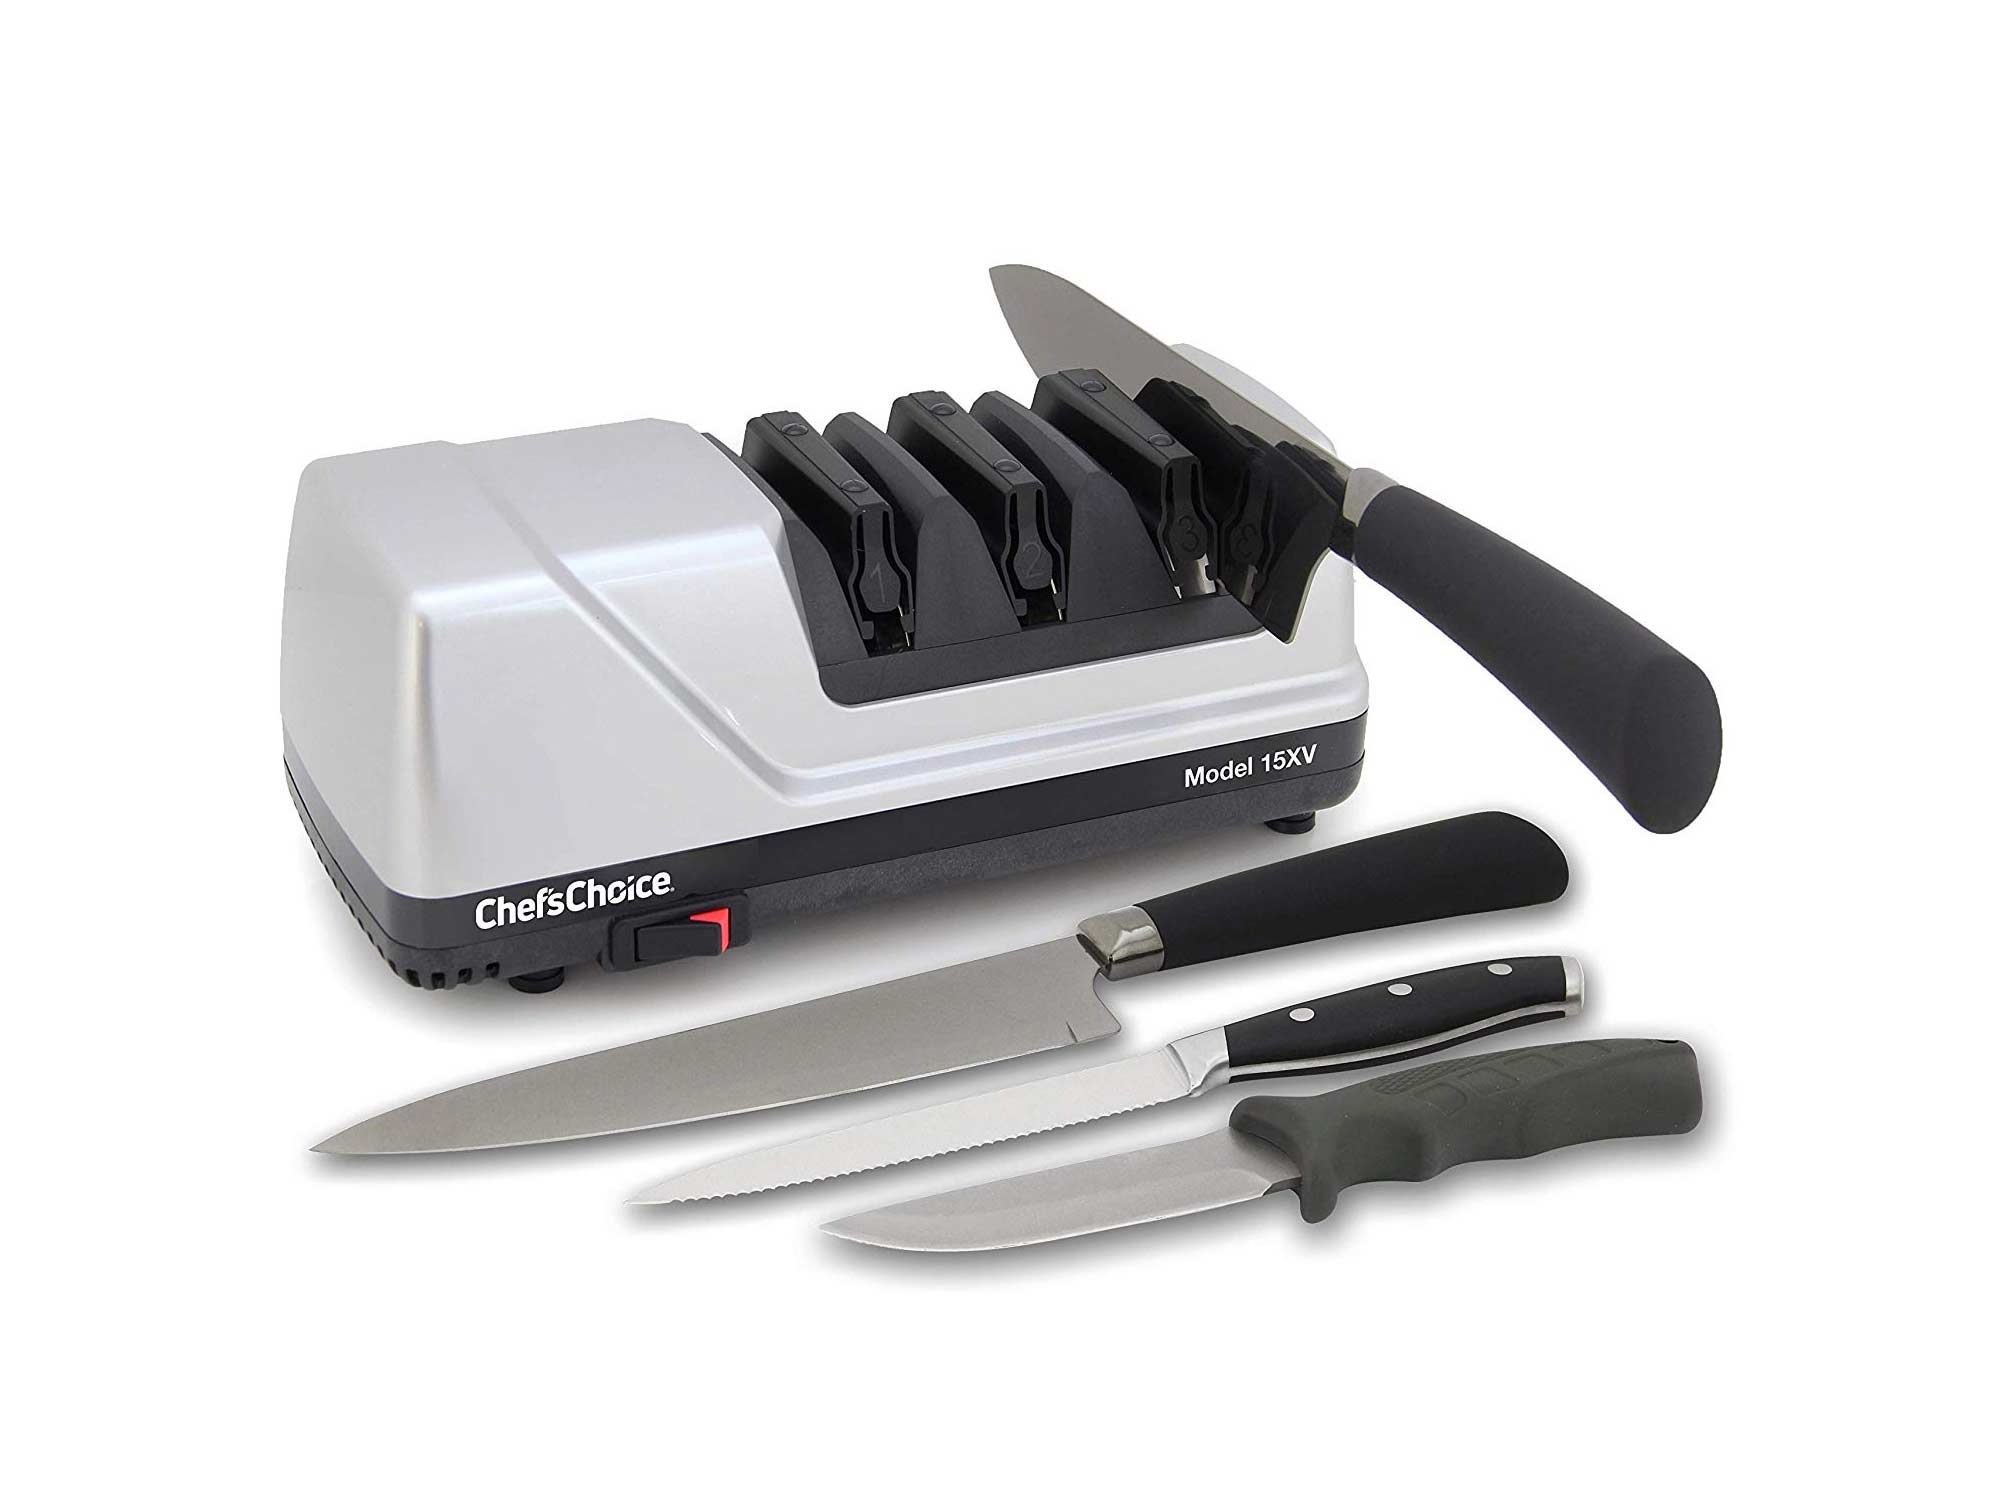 A three-stage sharpener will give you the most control while repairing the edge of your knives.